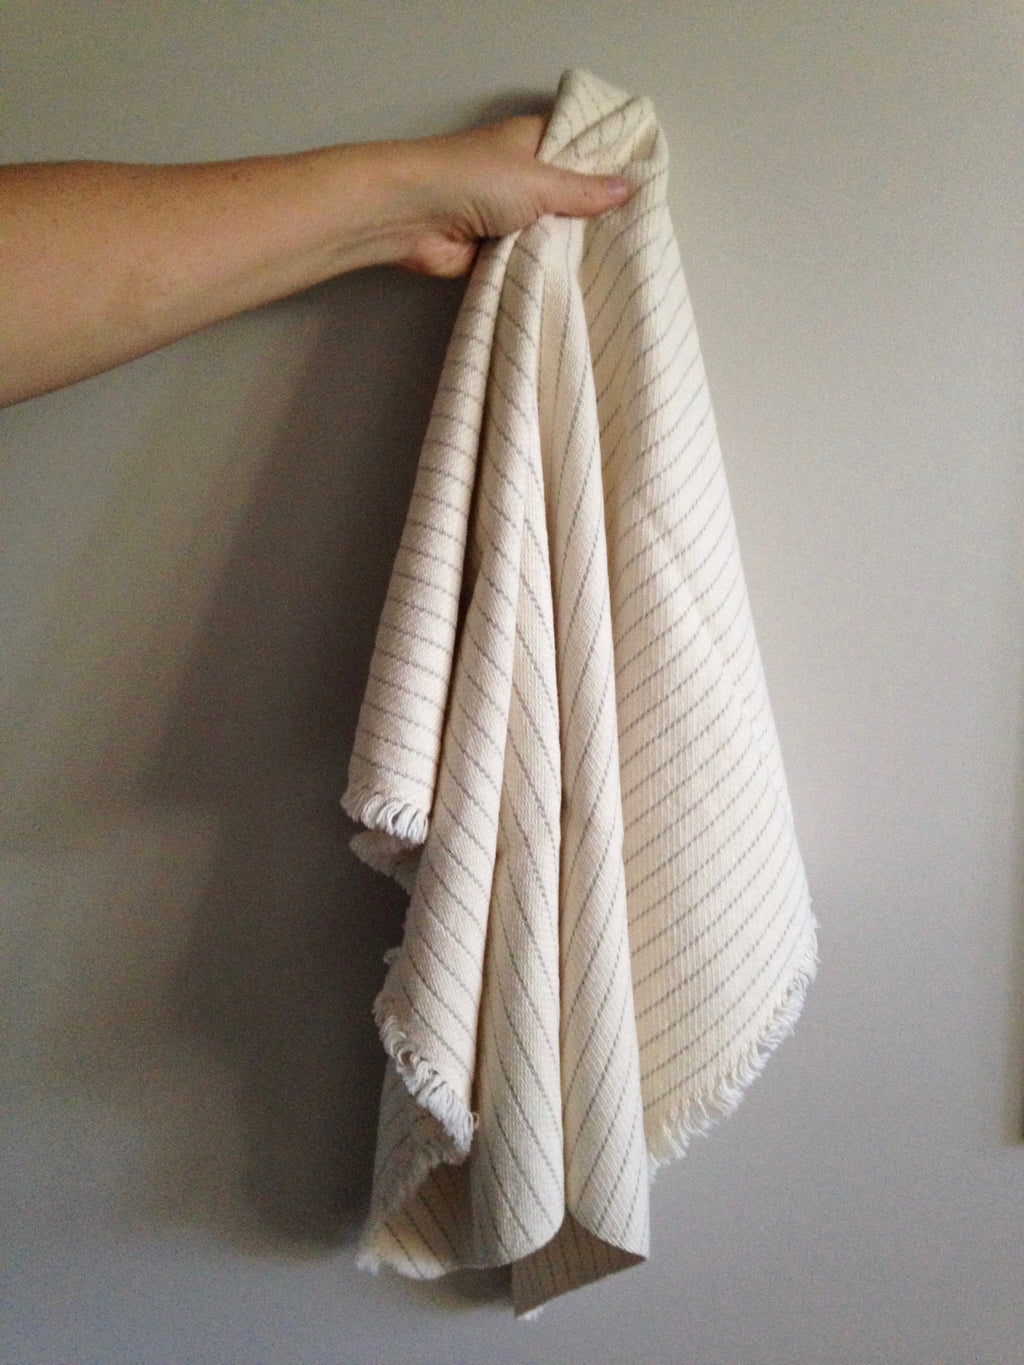 cotton and linen handwoven towel by Gently Woven